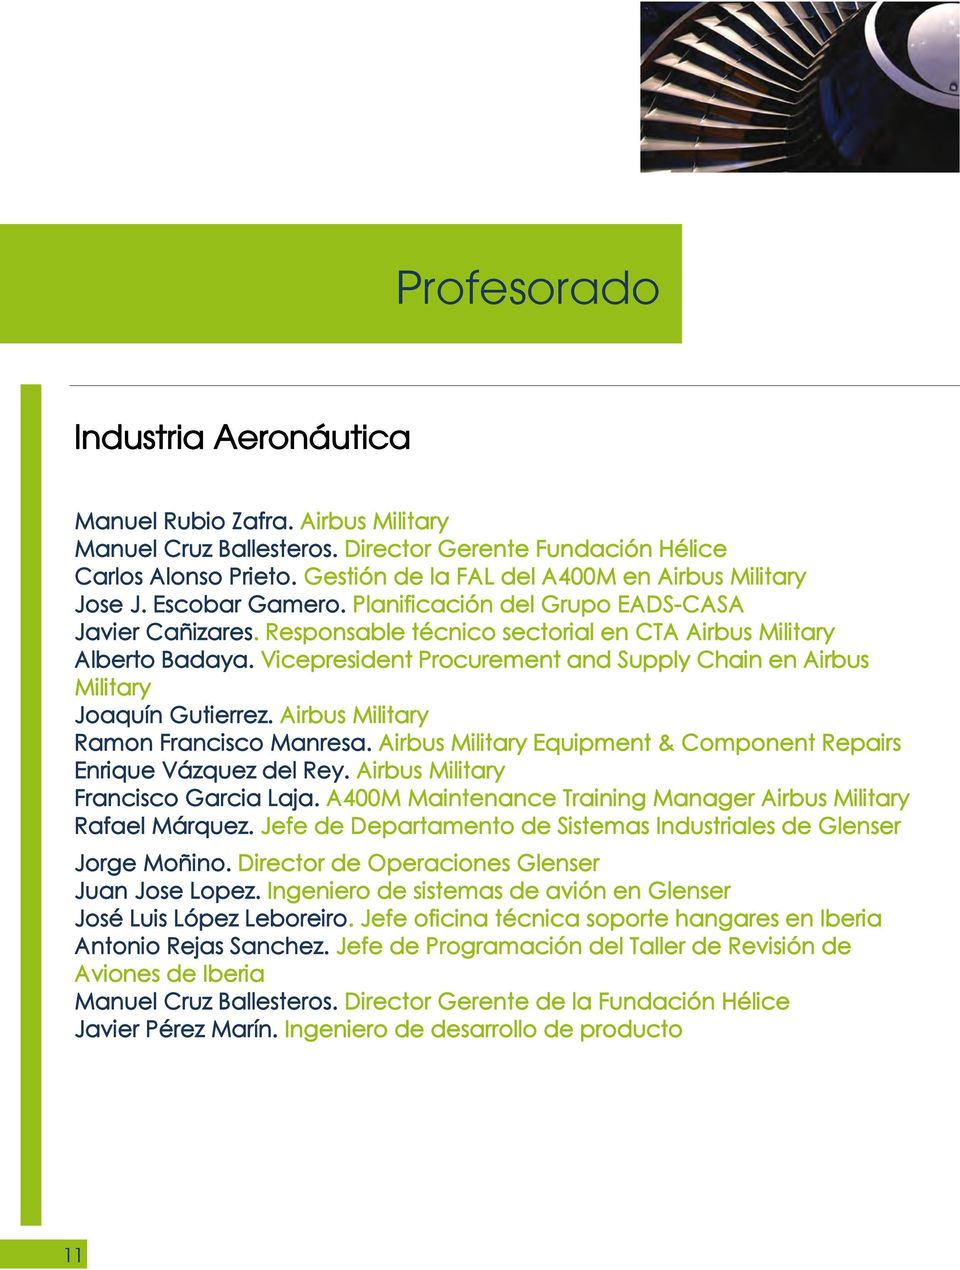 Vicepresident Procurement and Supply Chain en Airbus Military Joaquín Gutierrez. Airbus Military Ramon Francisco Manresa. Airbus Military Equipment & Component Repairs Enrique Vázquez del Rey.